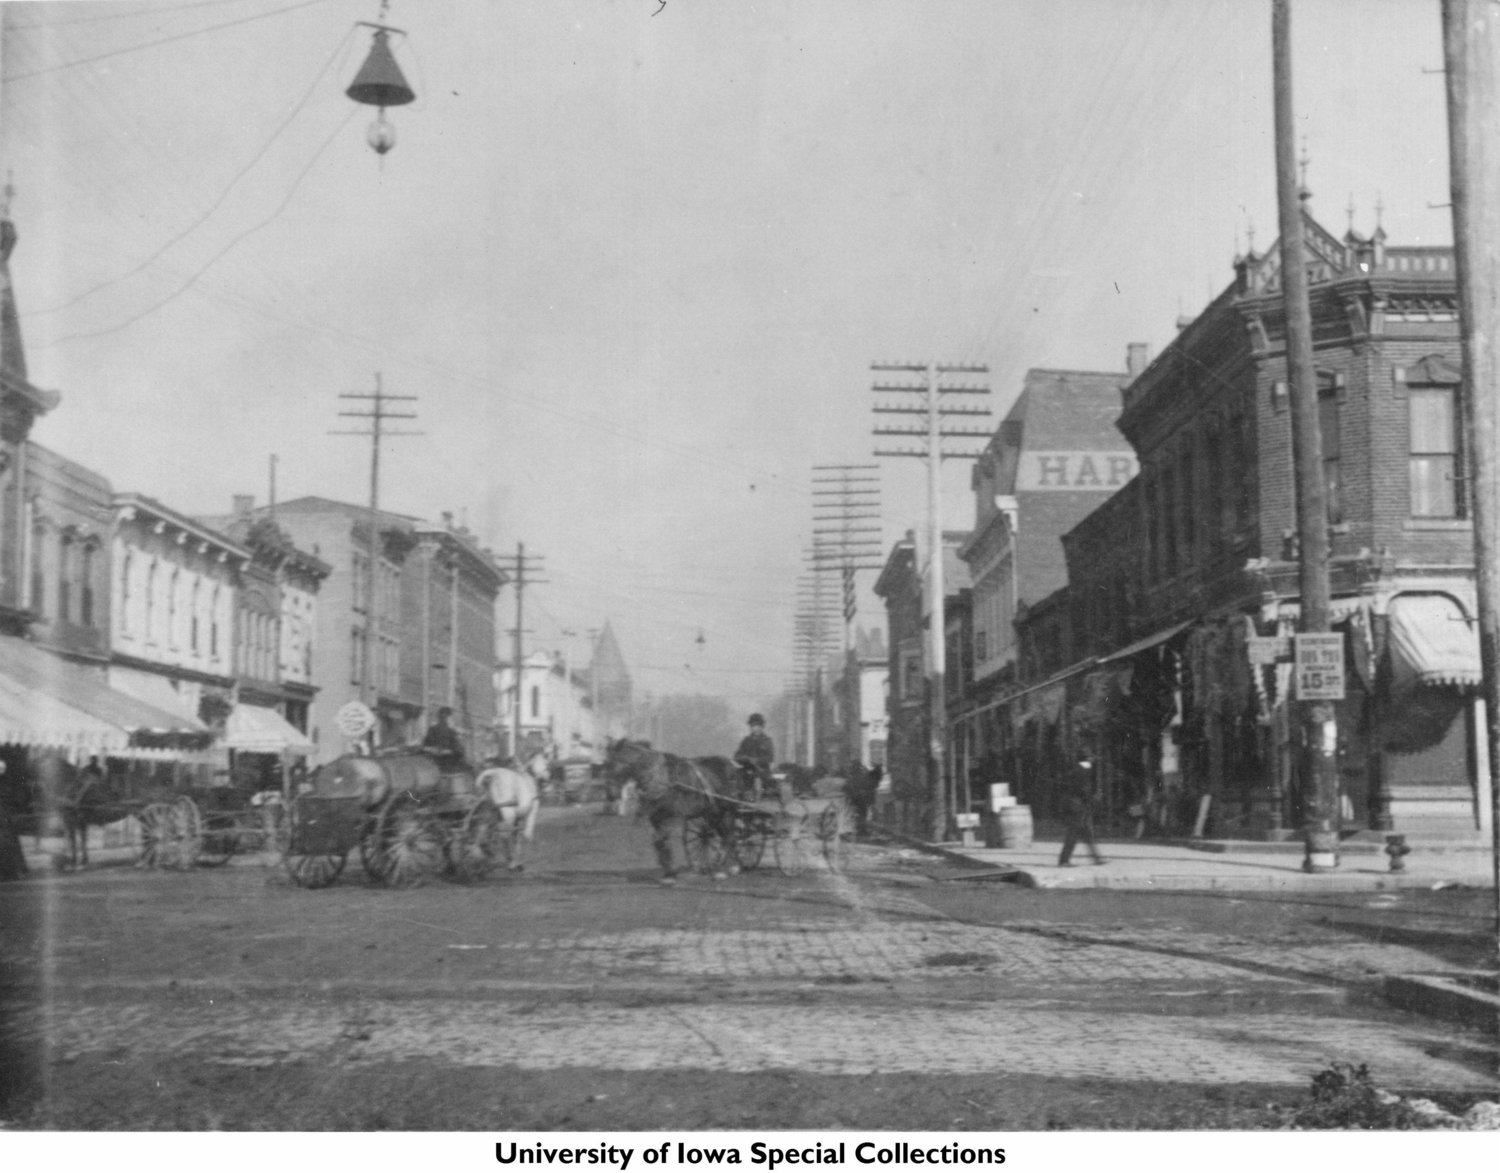 """Our apartment on the ped-mall can be seen  here  as the block looked in 1893/1895, with """"HAR"""" visible on its side."""